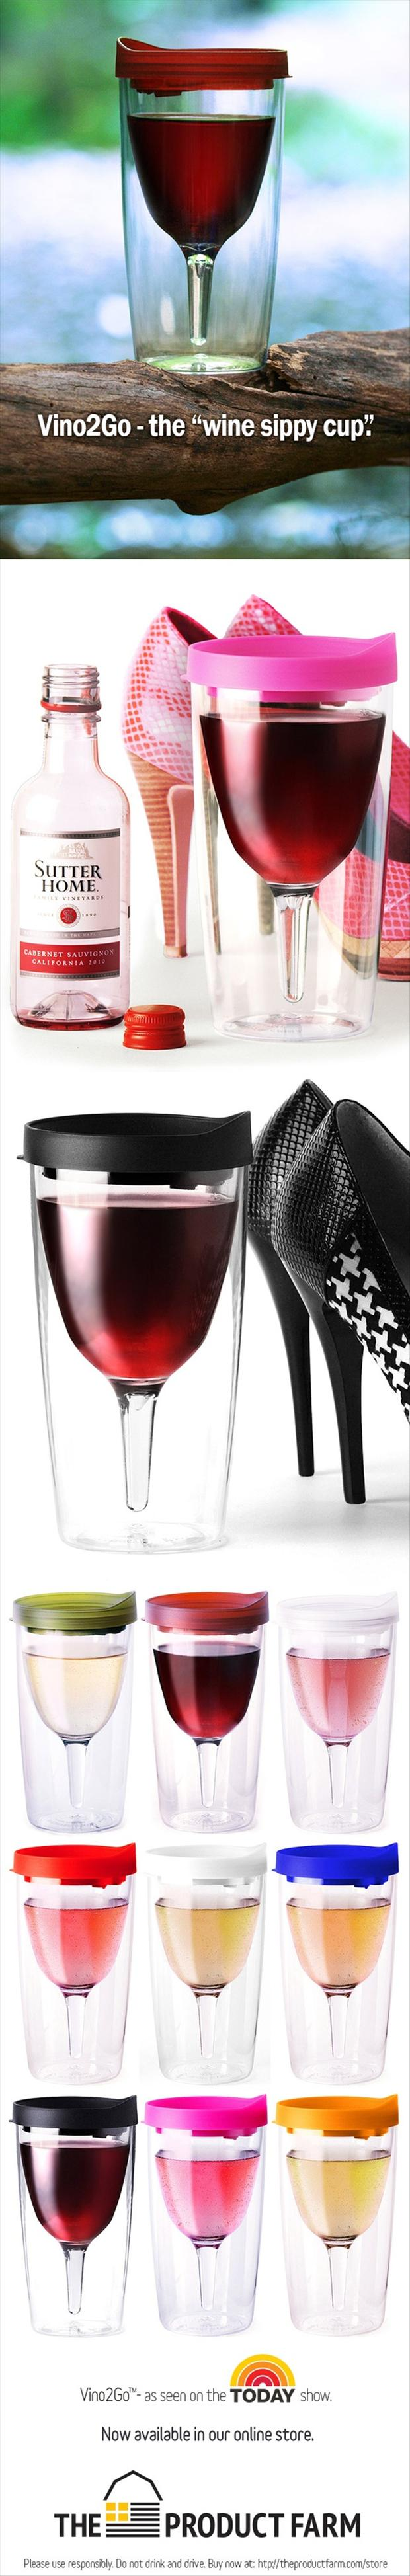 vino2go, wine sippy cup, funny pictures